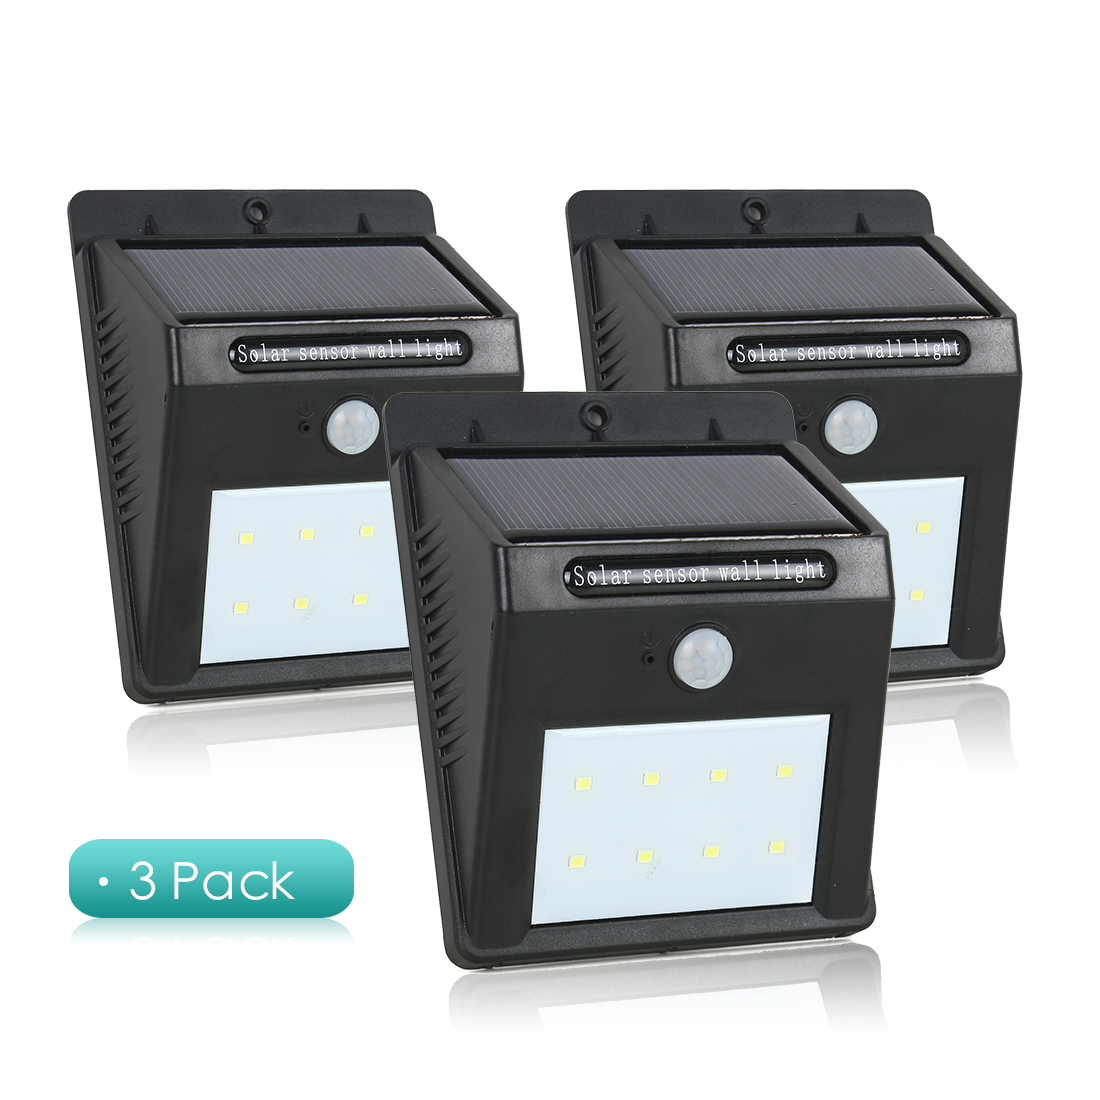 3 Pcs LED Solar Light PIR CDS Motion Sensor Lamp 8 LEDs 80 Lumens Wireless